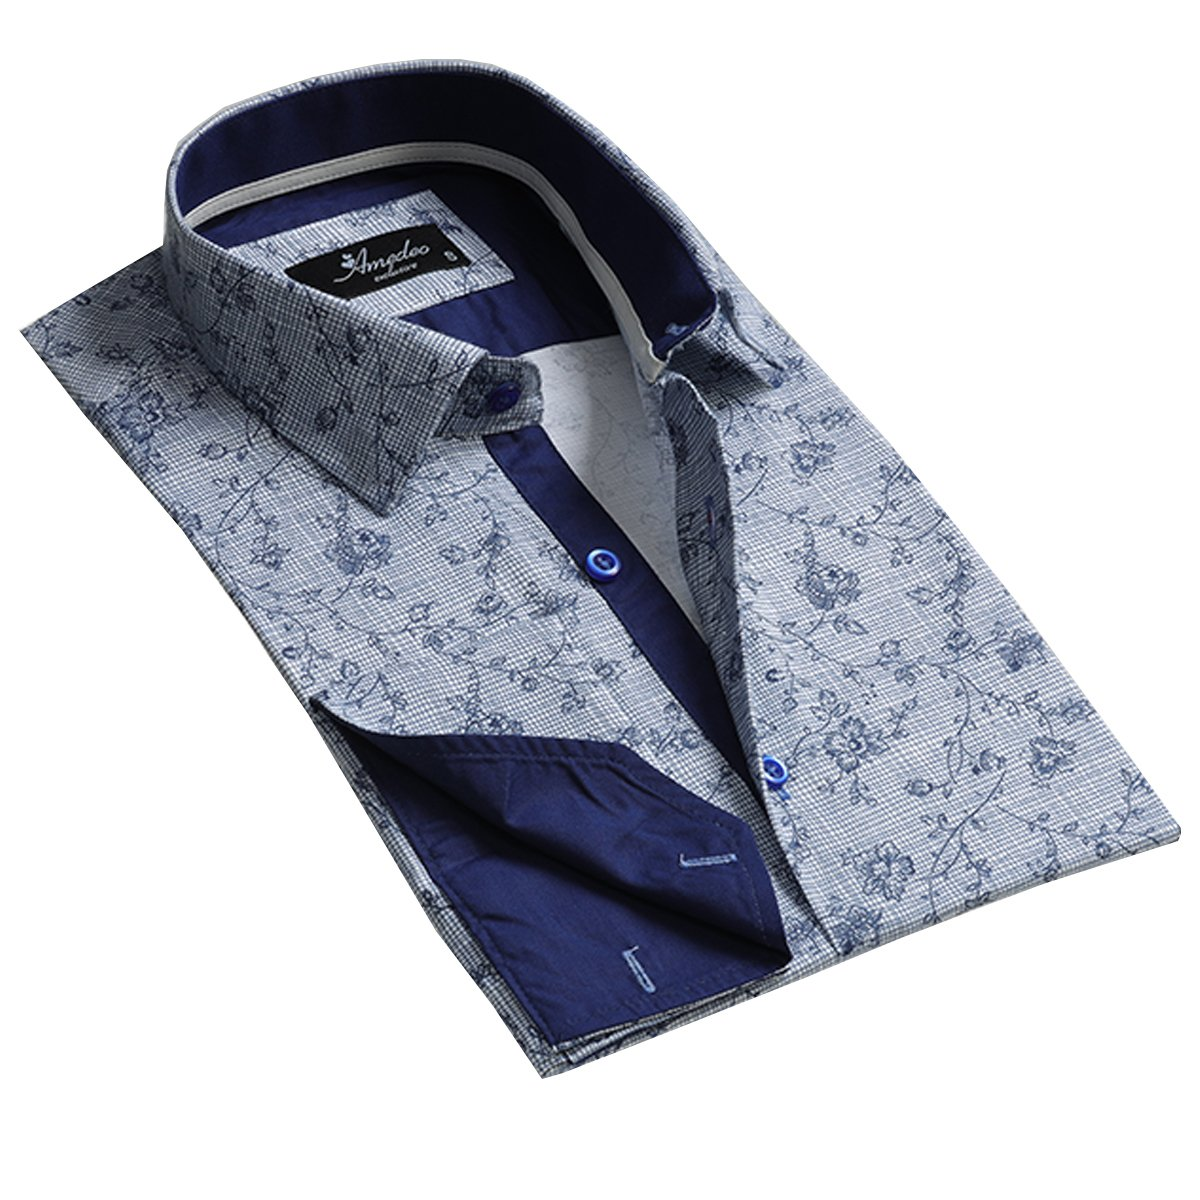 Blue and White Mens Slim Fit French Cuff Dress Shirts with Cufflink Holes - Casual and Formal - Amedeo Exclusive